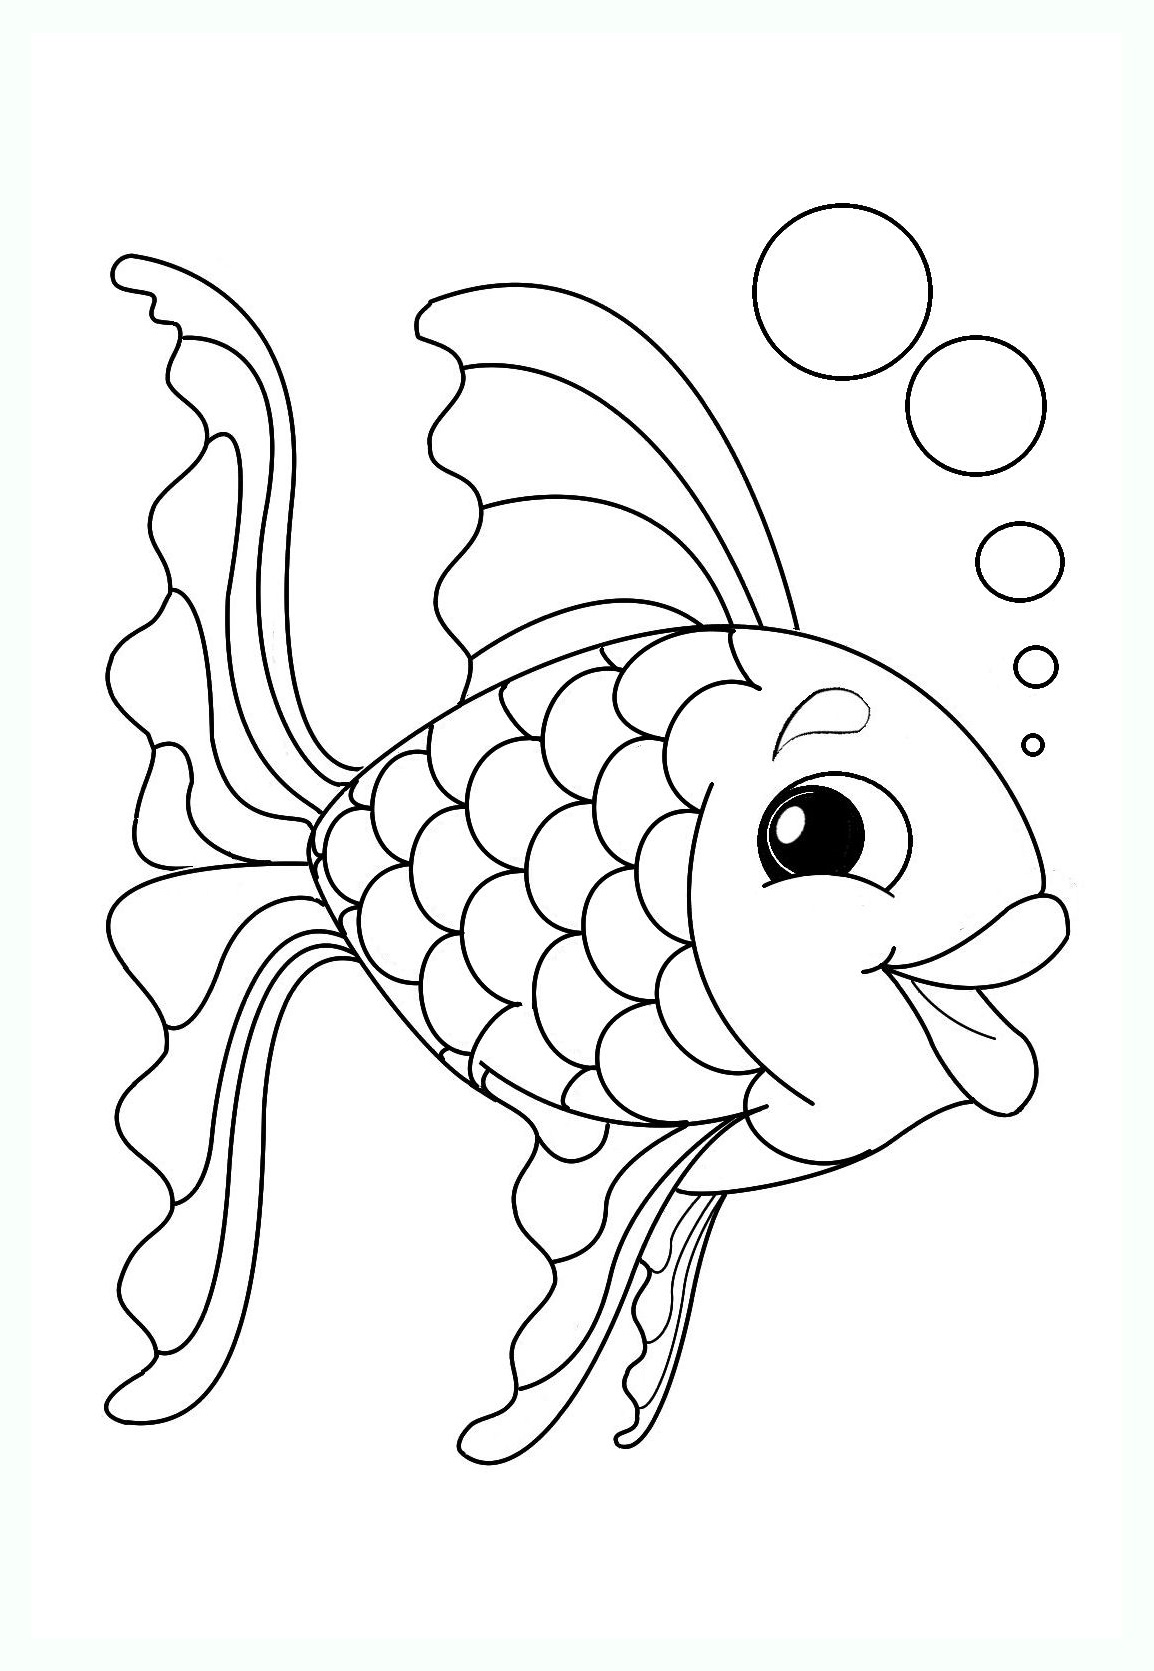 Funny Pisces coloring page for children